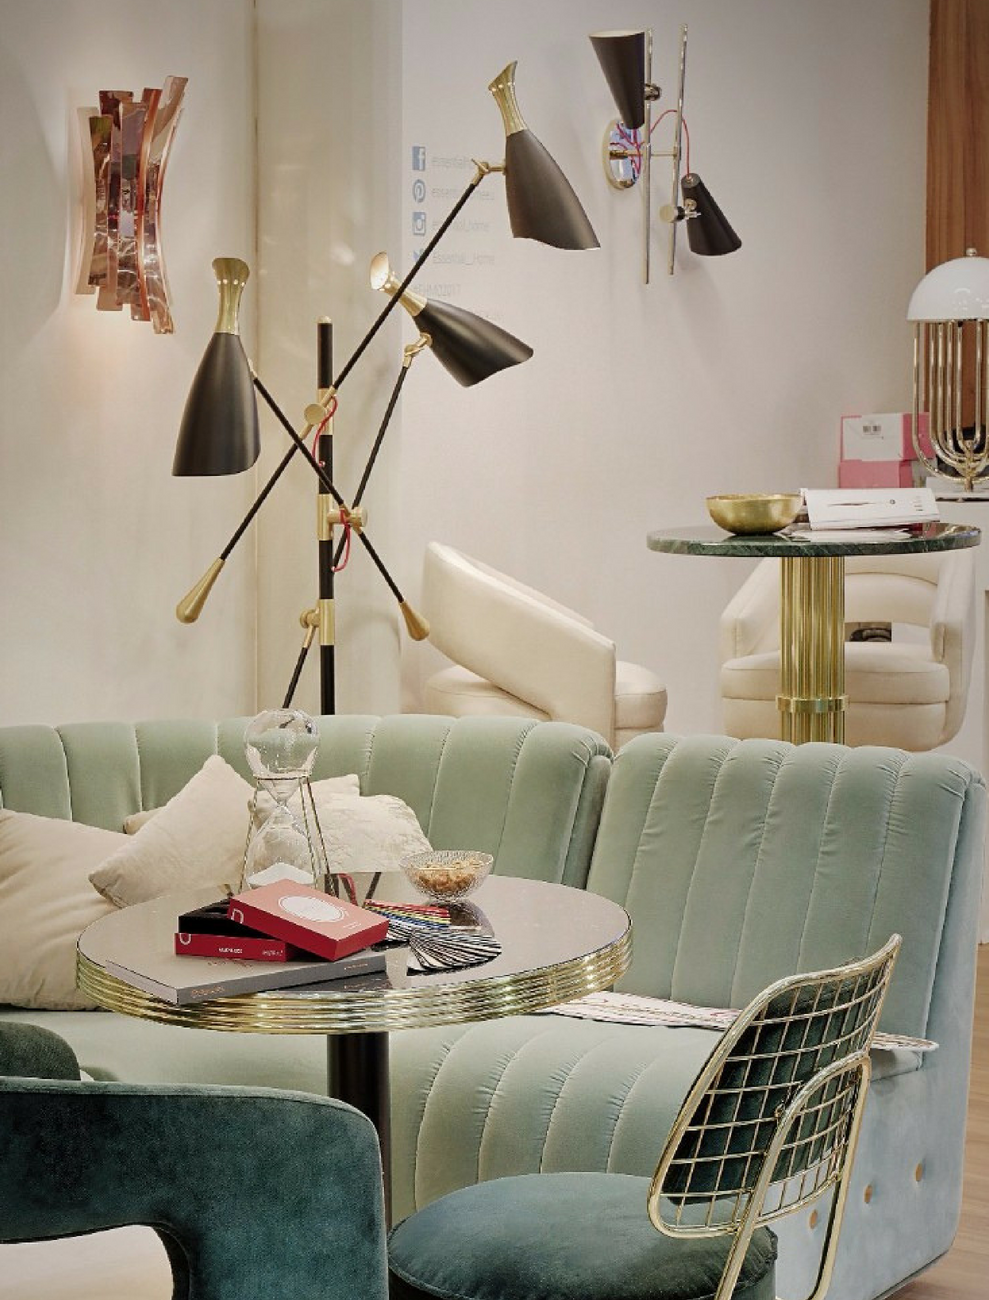 Maison et Objet And More _ A Throwback In Time! 3